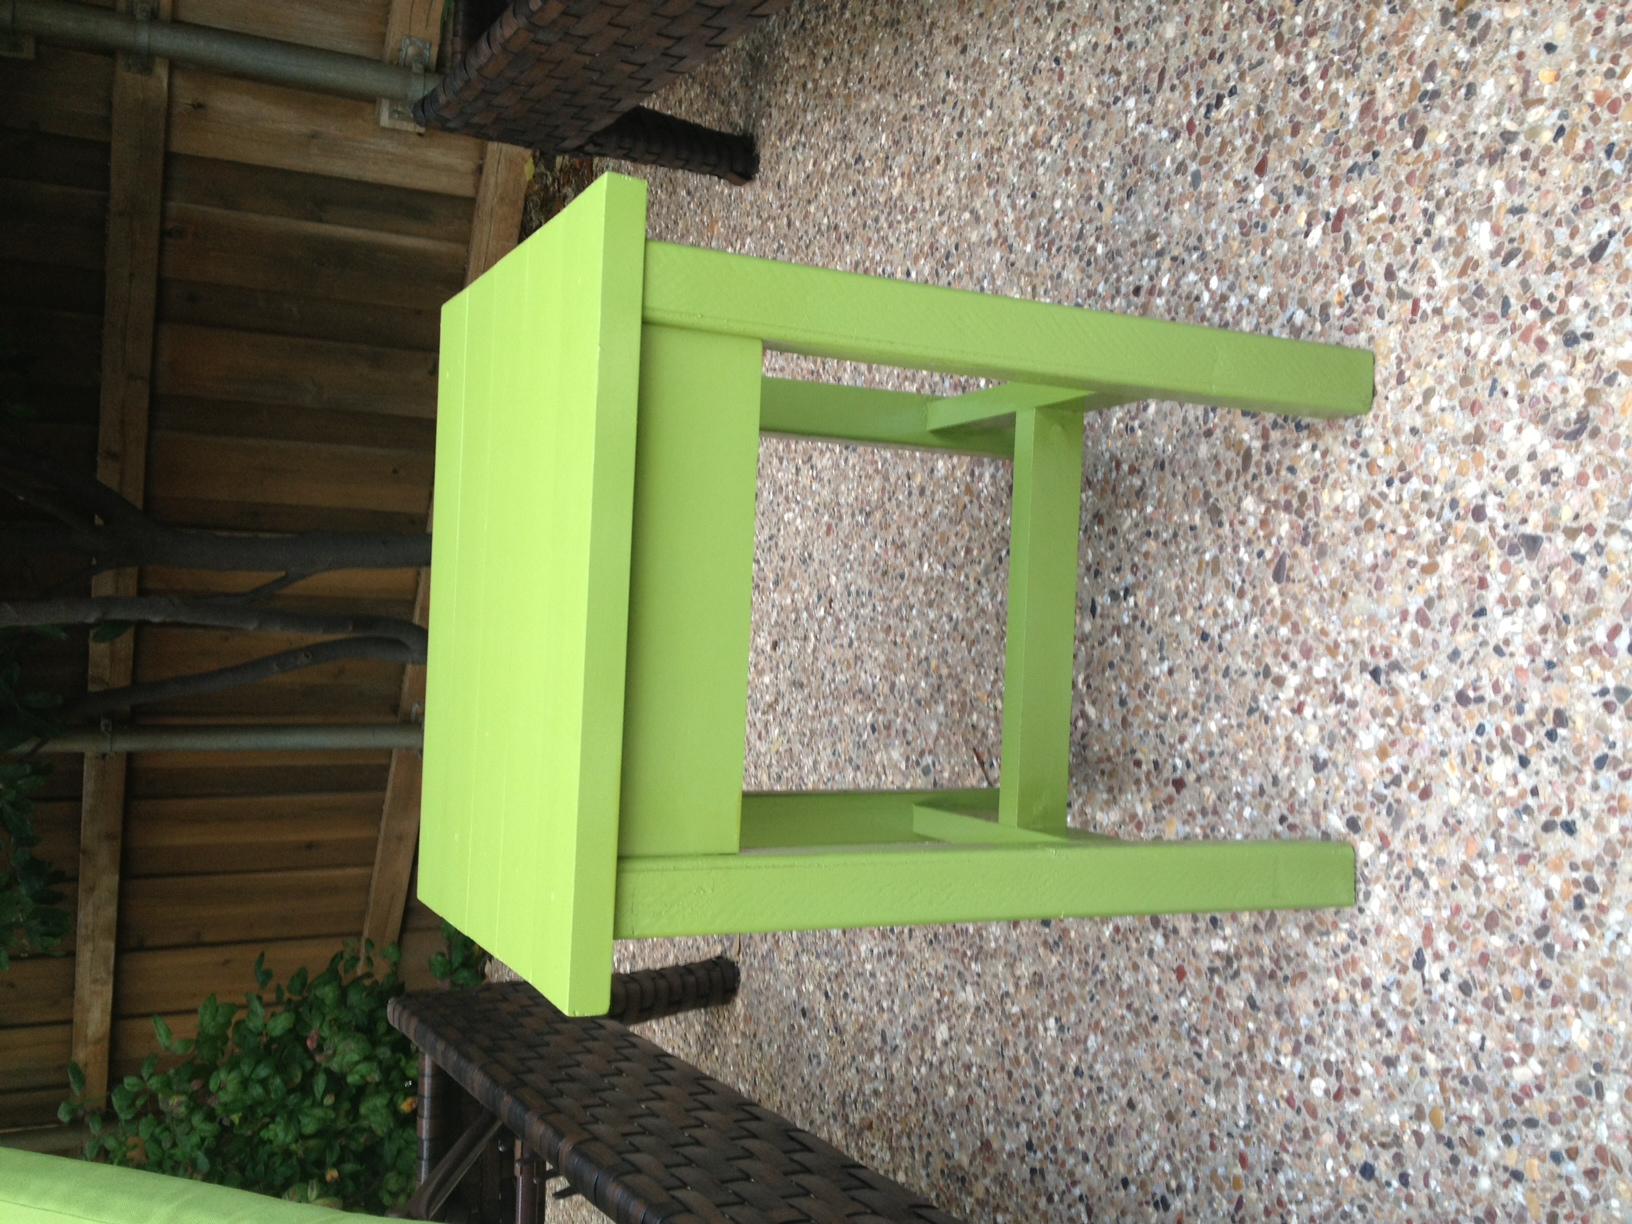 Get free adirondack side table plans jonson for Adirondack side table plans